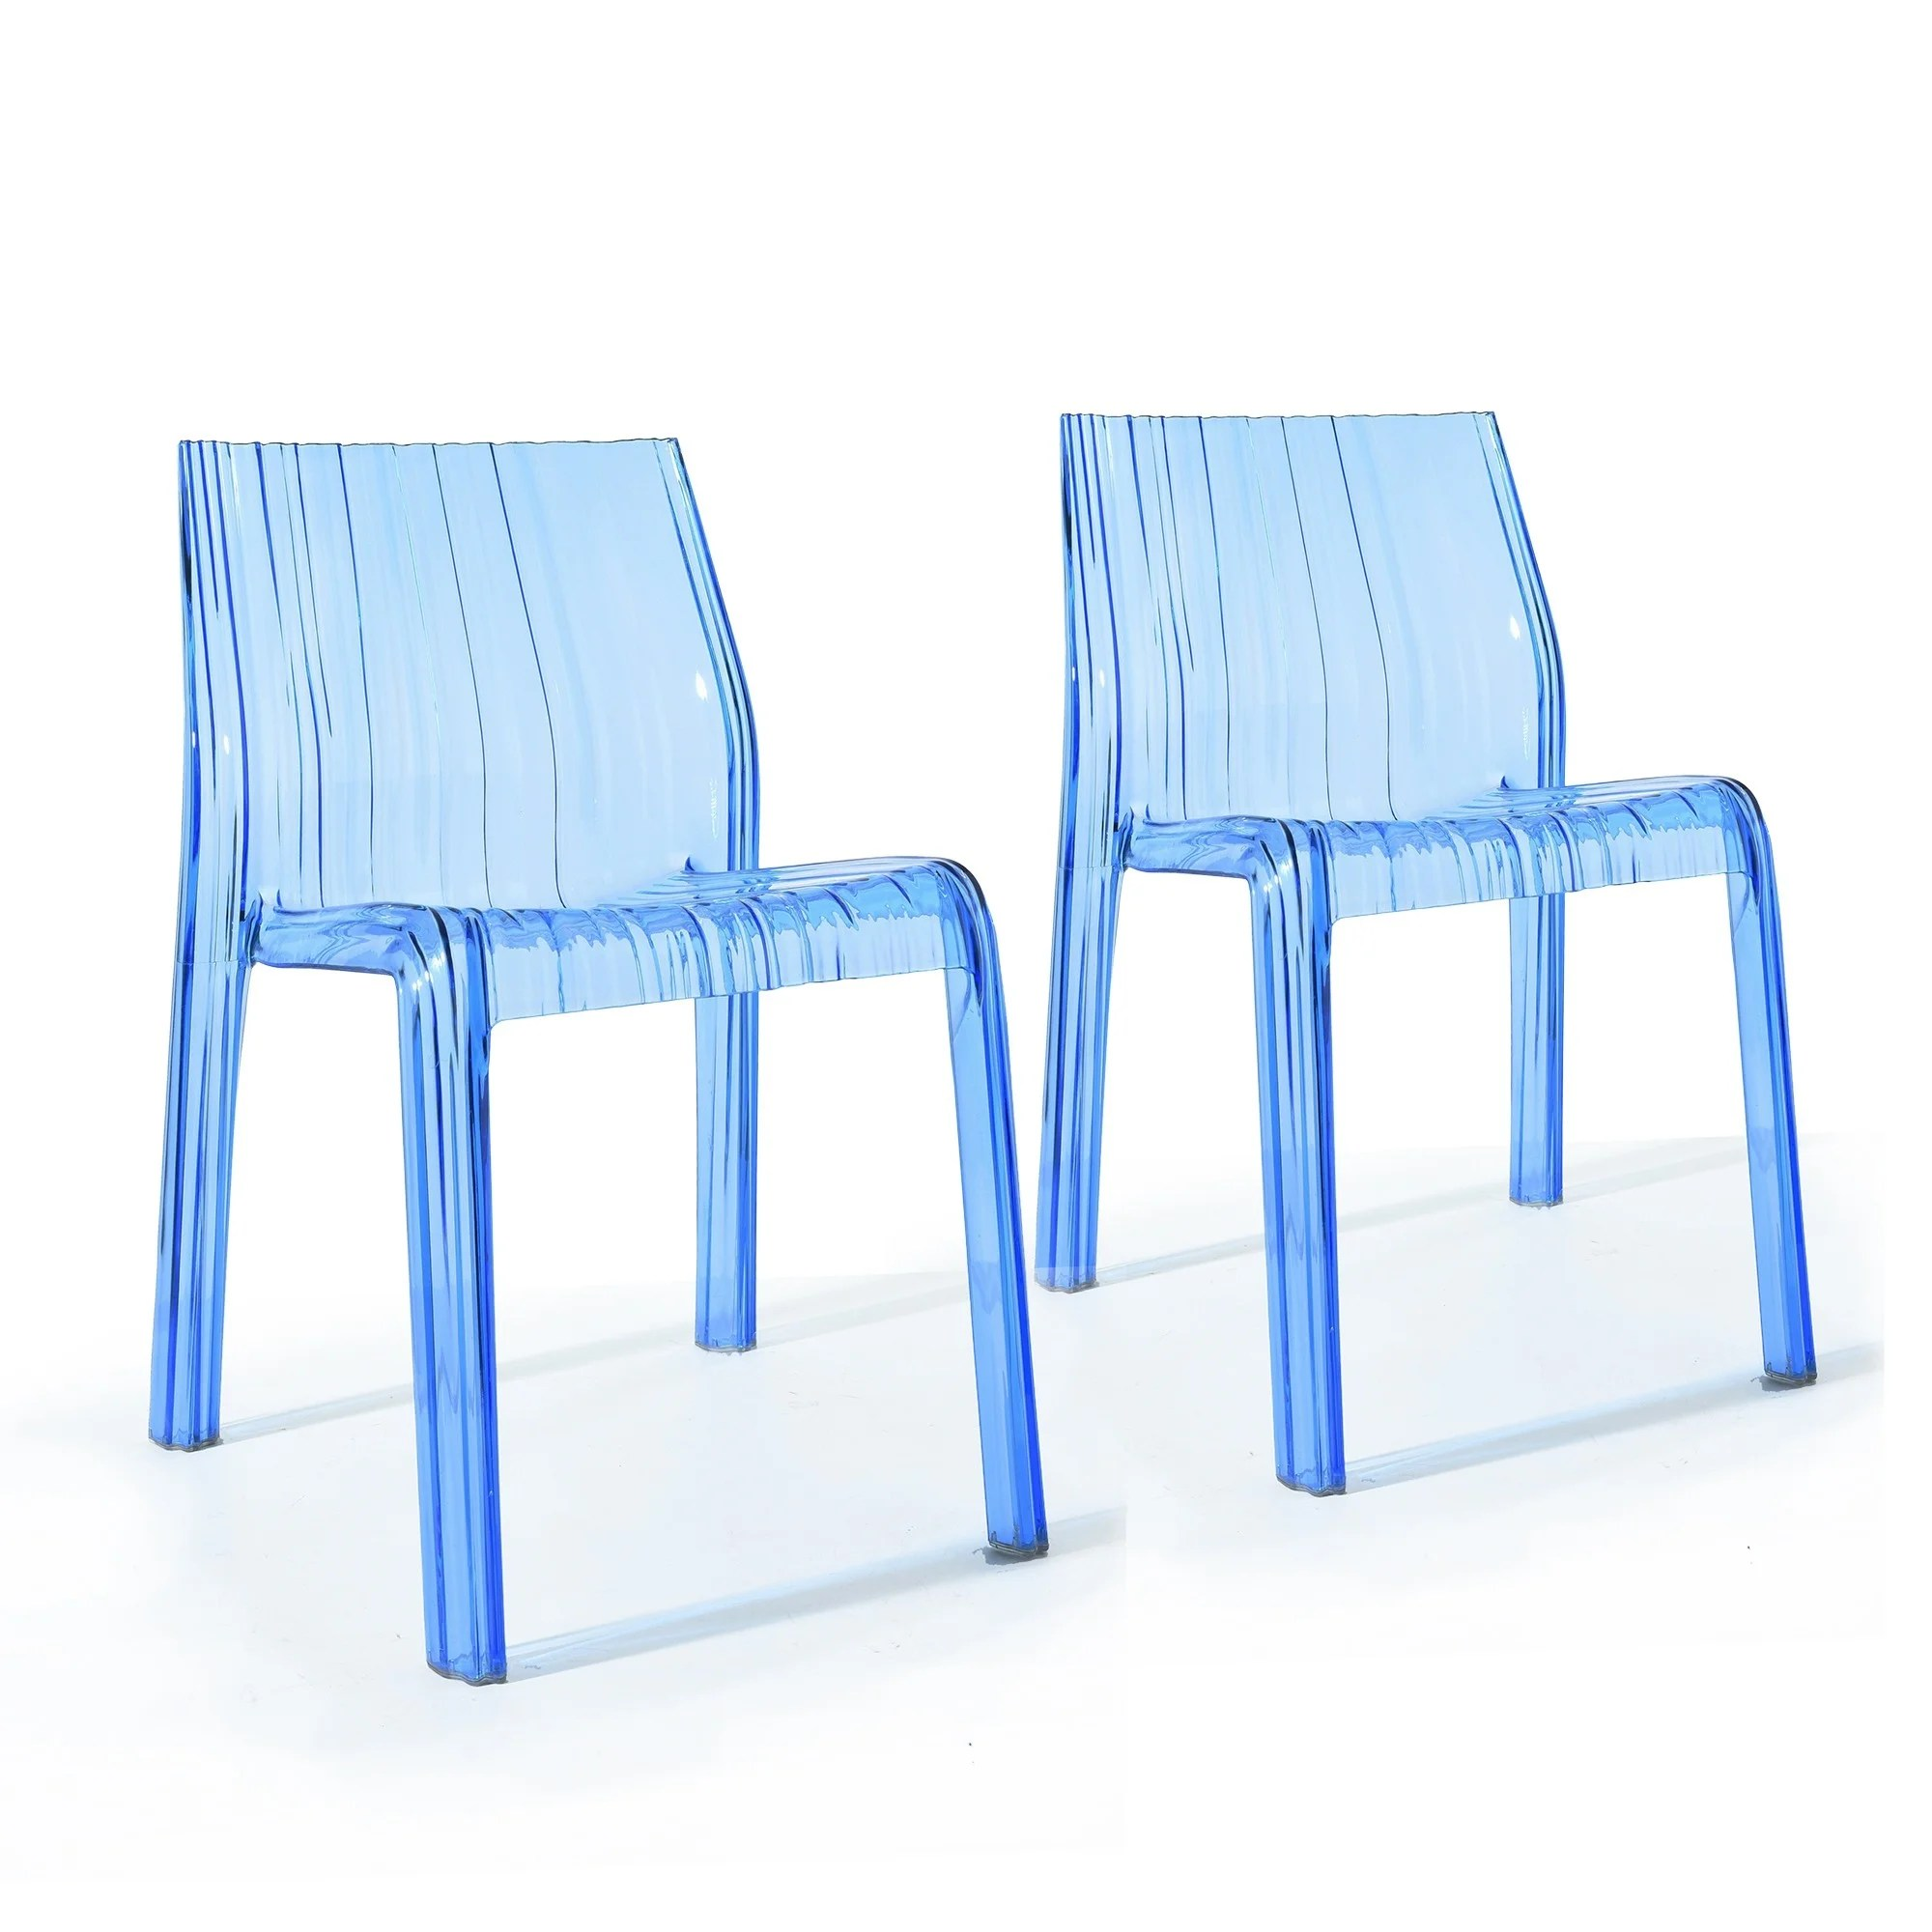 Tiffany Blue Chair Buy Blue Warehouse Of Tiffany Kitchen Dining Room Chairs Online